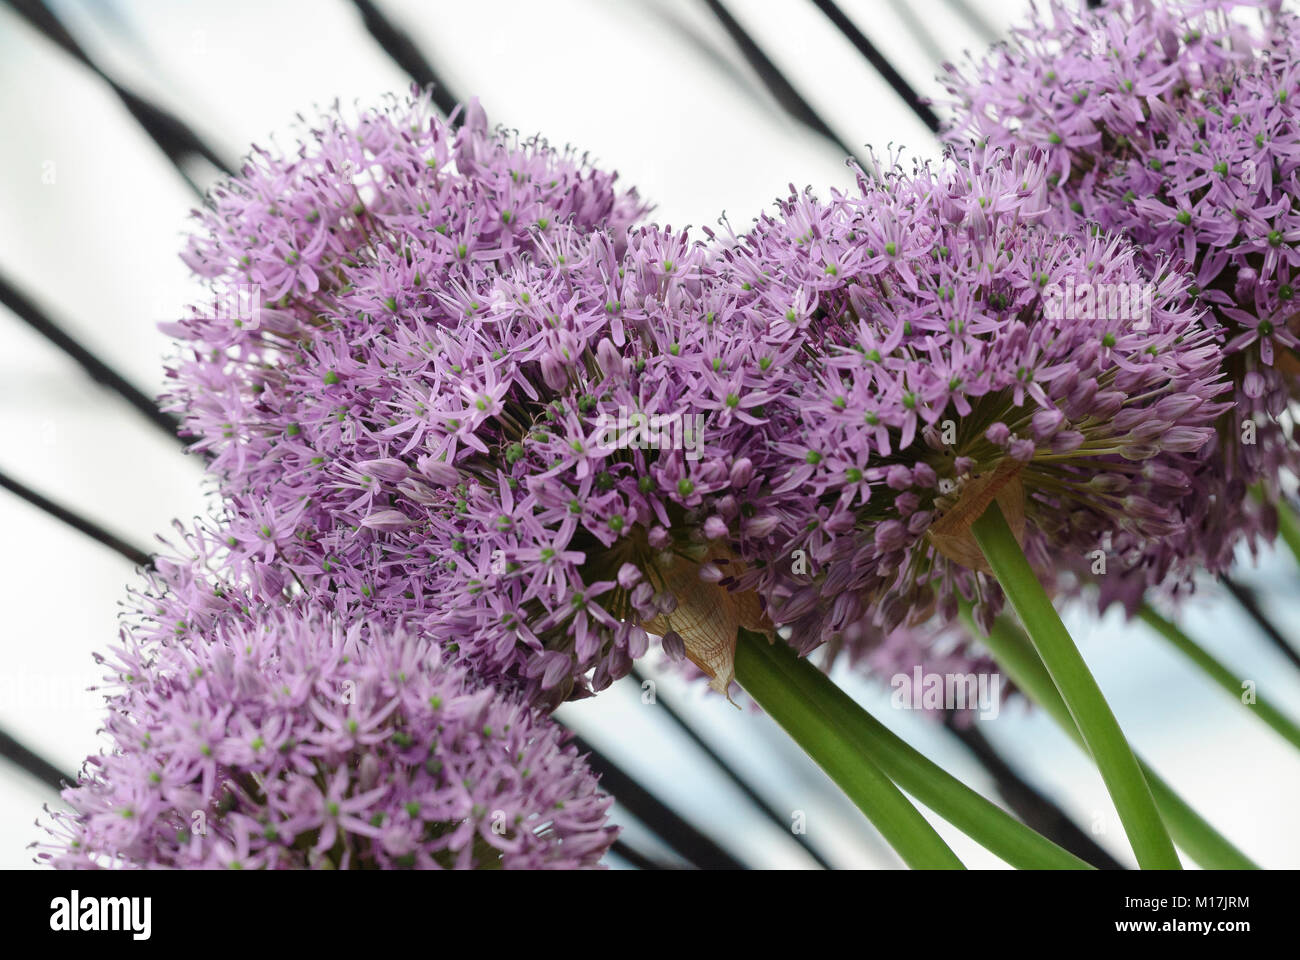 Zierlauch Allium Allium Zierlauch Allium Garlic Stock Photo 172886776 Alamy